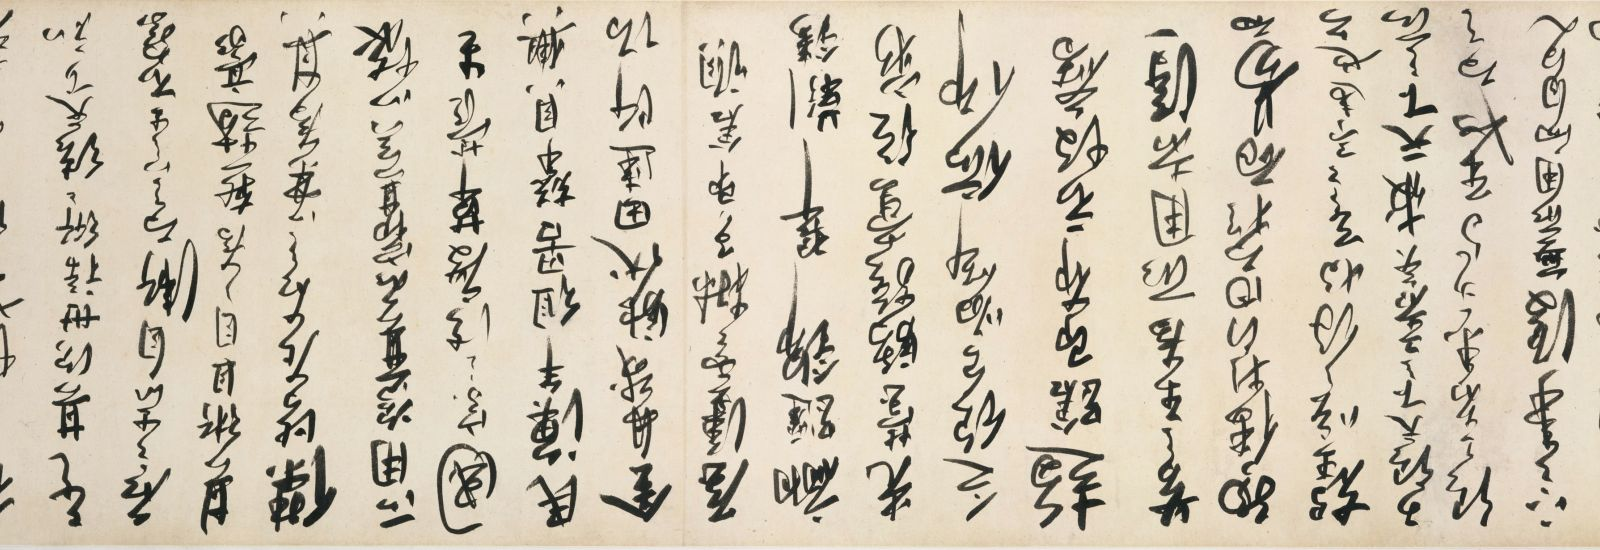 Lots of Chinese characters on a scroll